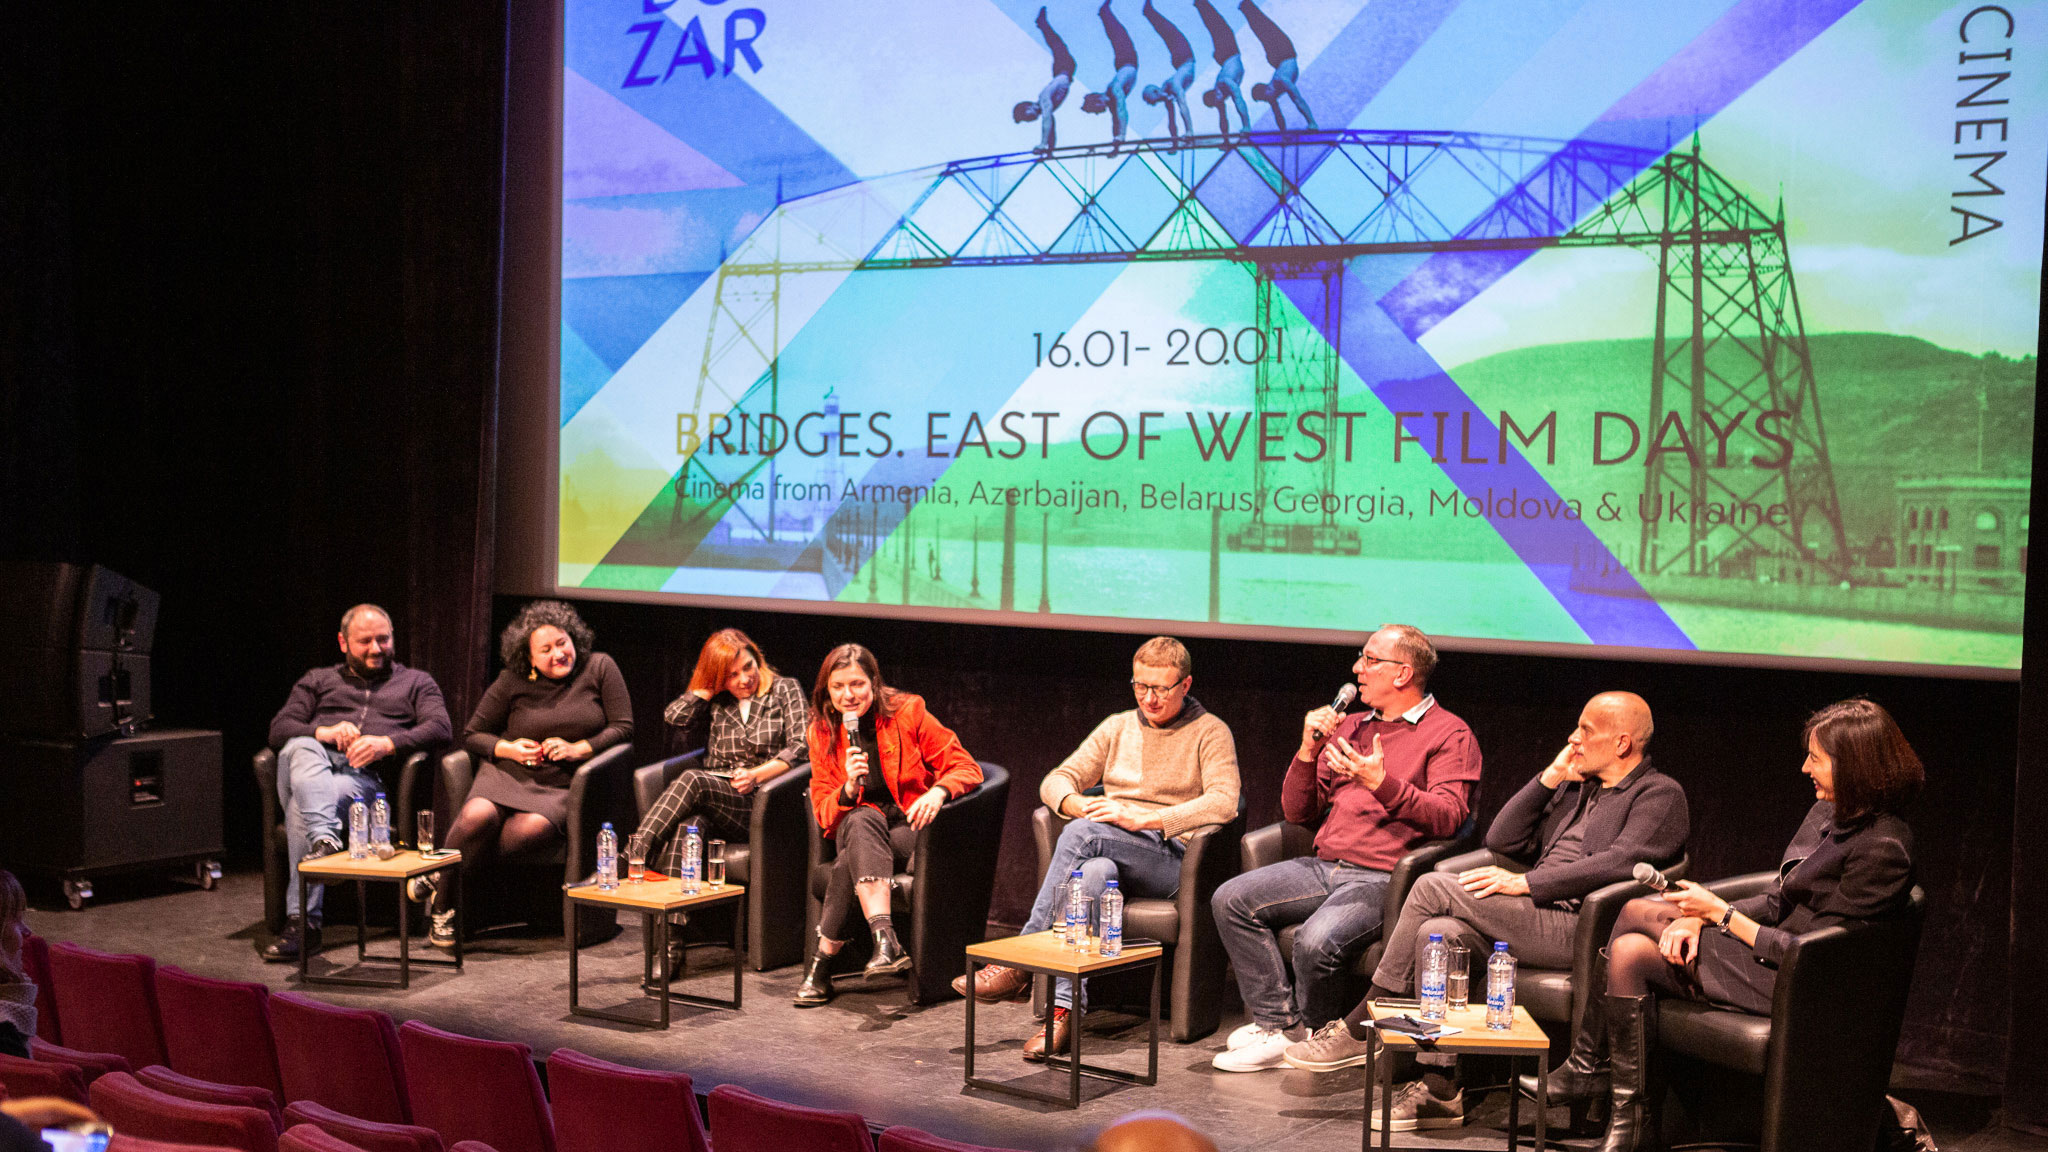 AGBU Europe contributes to Film Days featuring countries of Eastern Partnership at Bozar – Center for Fine Arts in Brussels